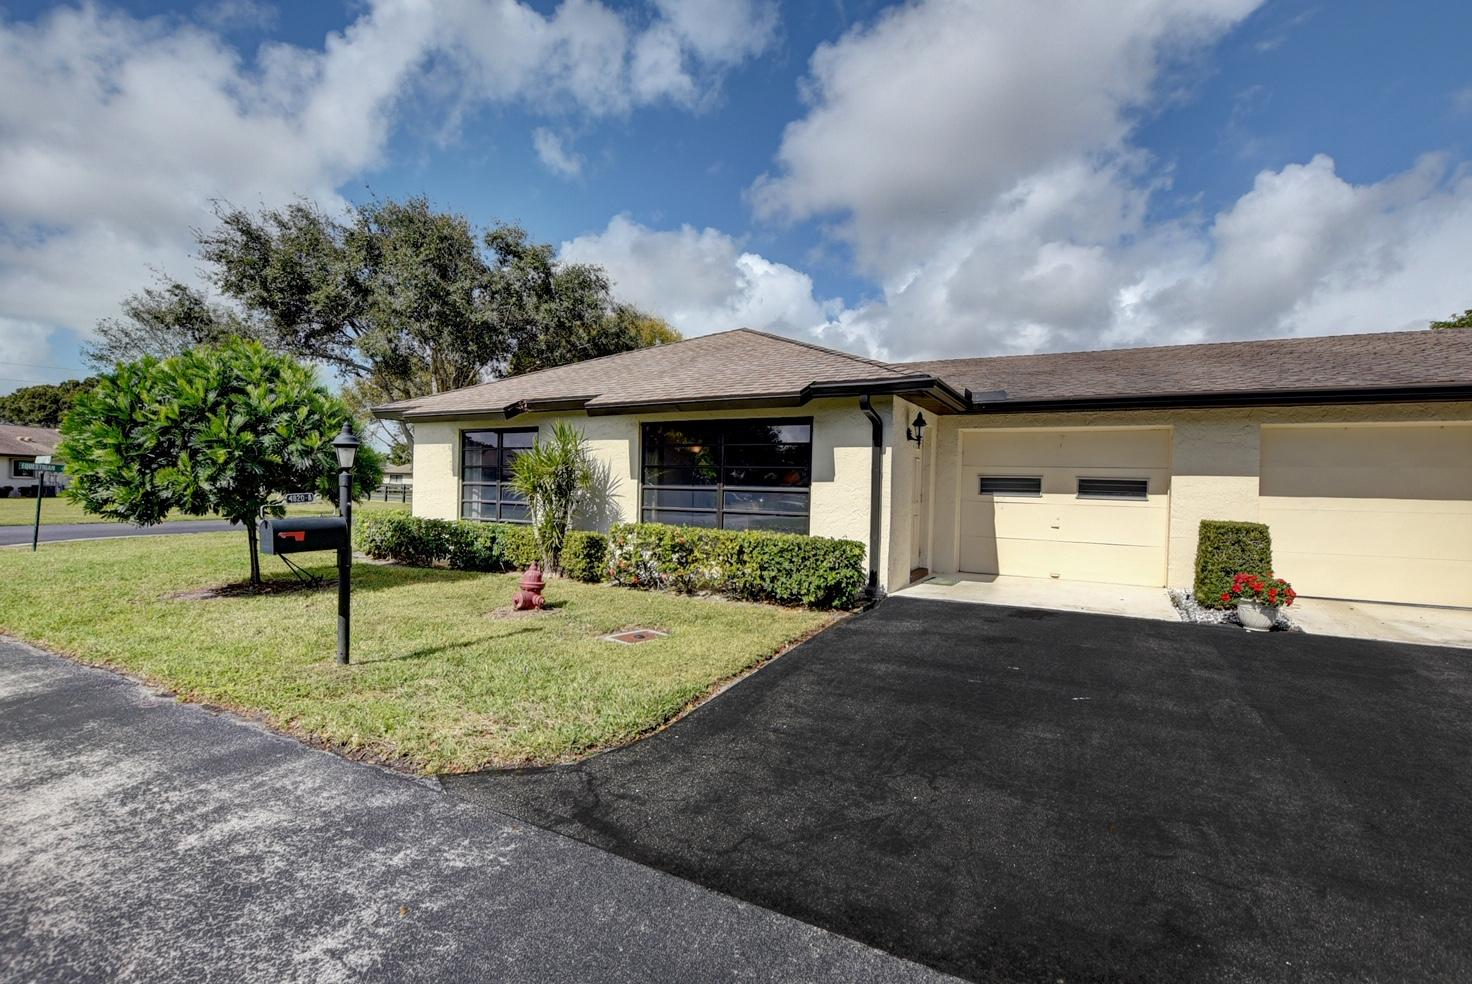 Home for sale in Greentree Boynton Beach Florida